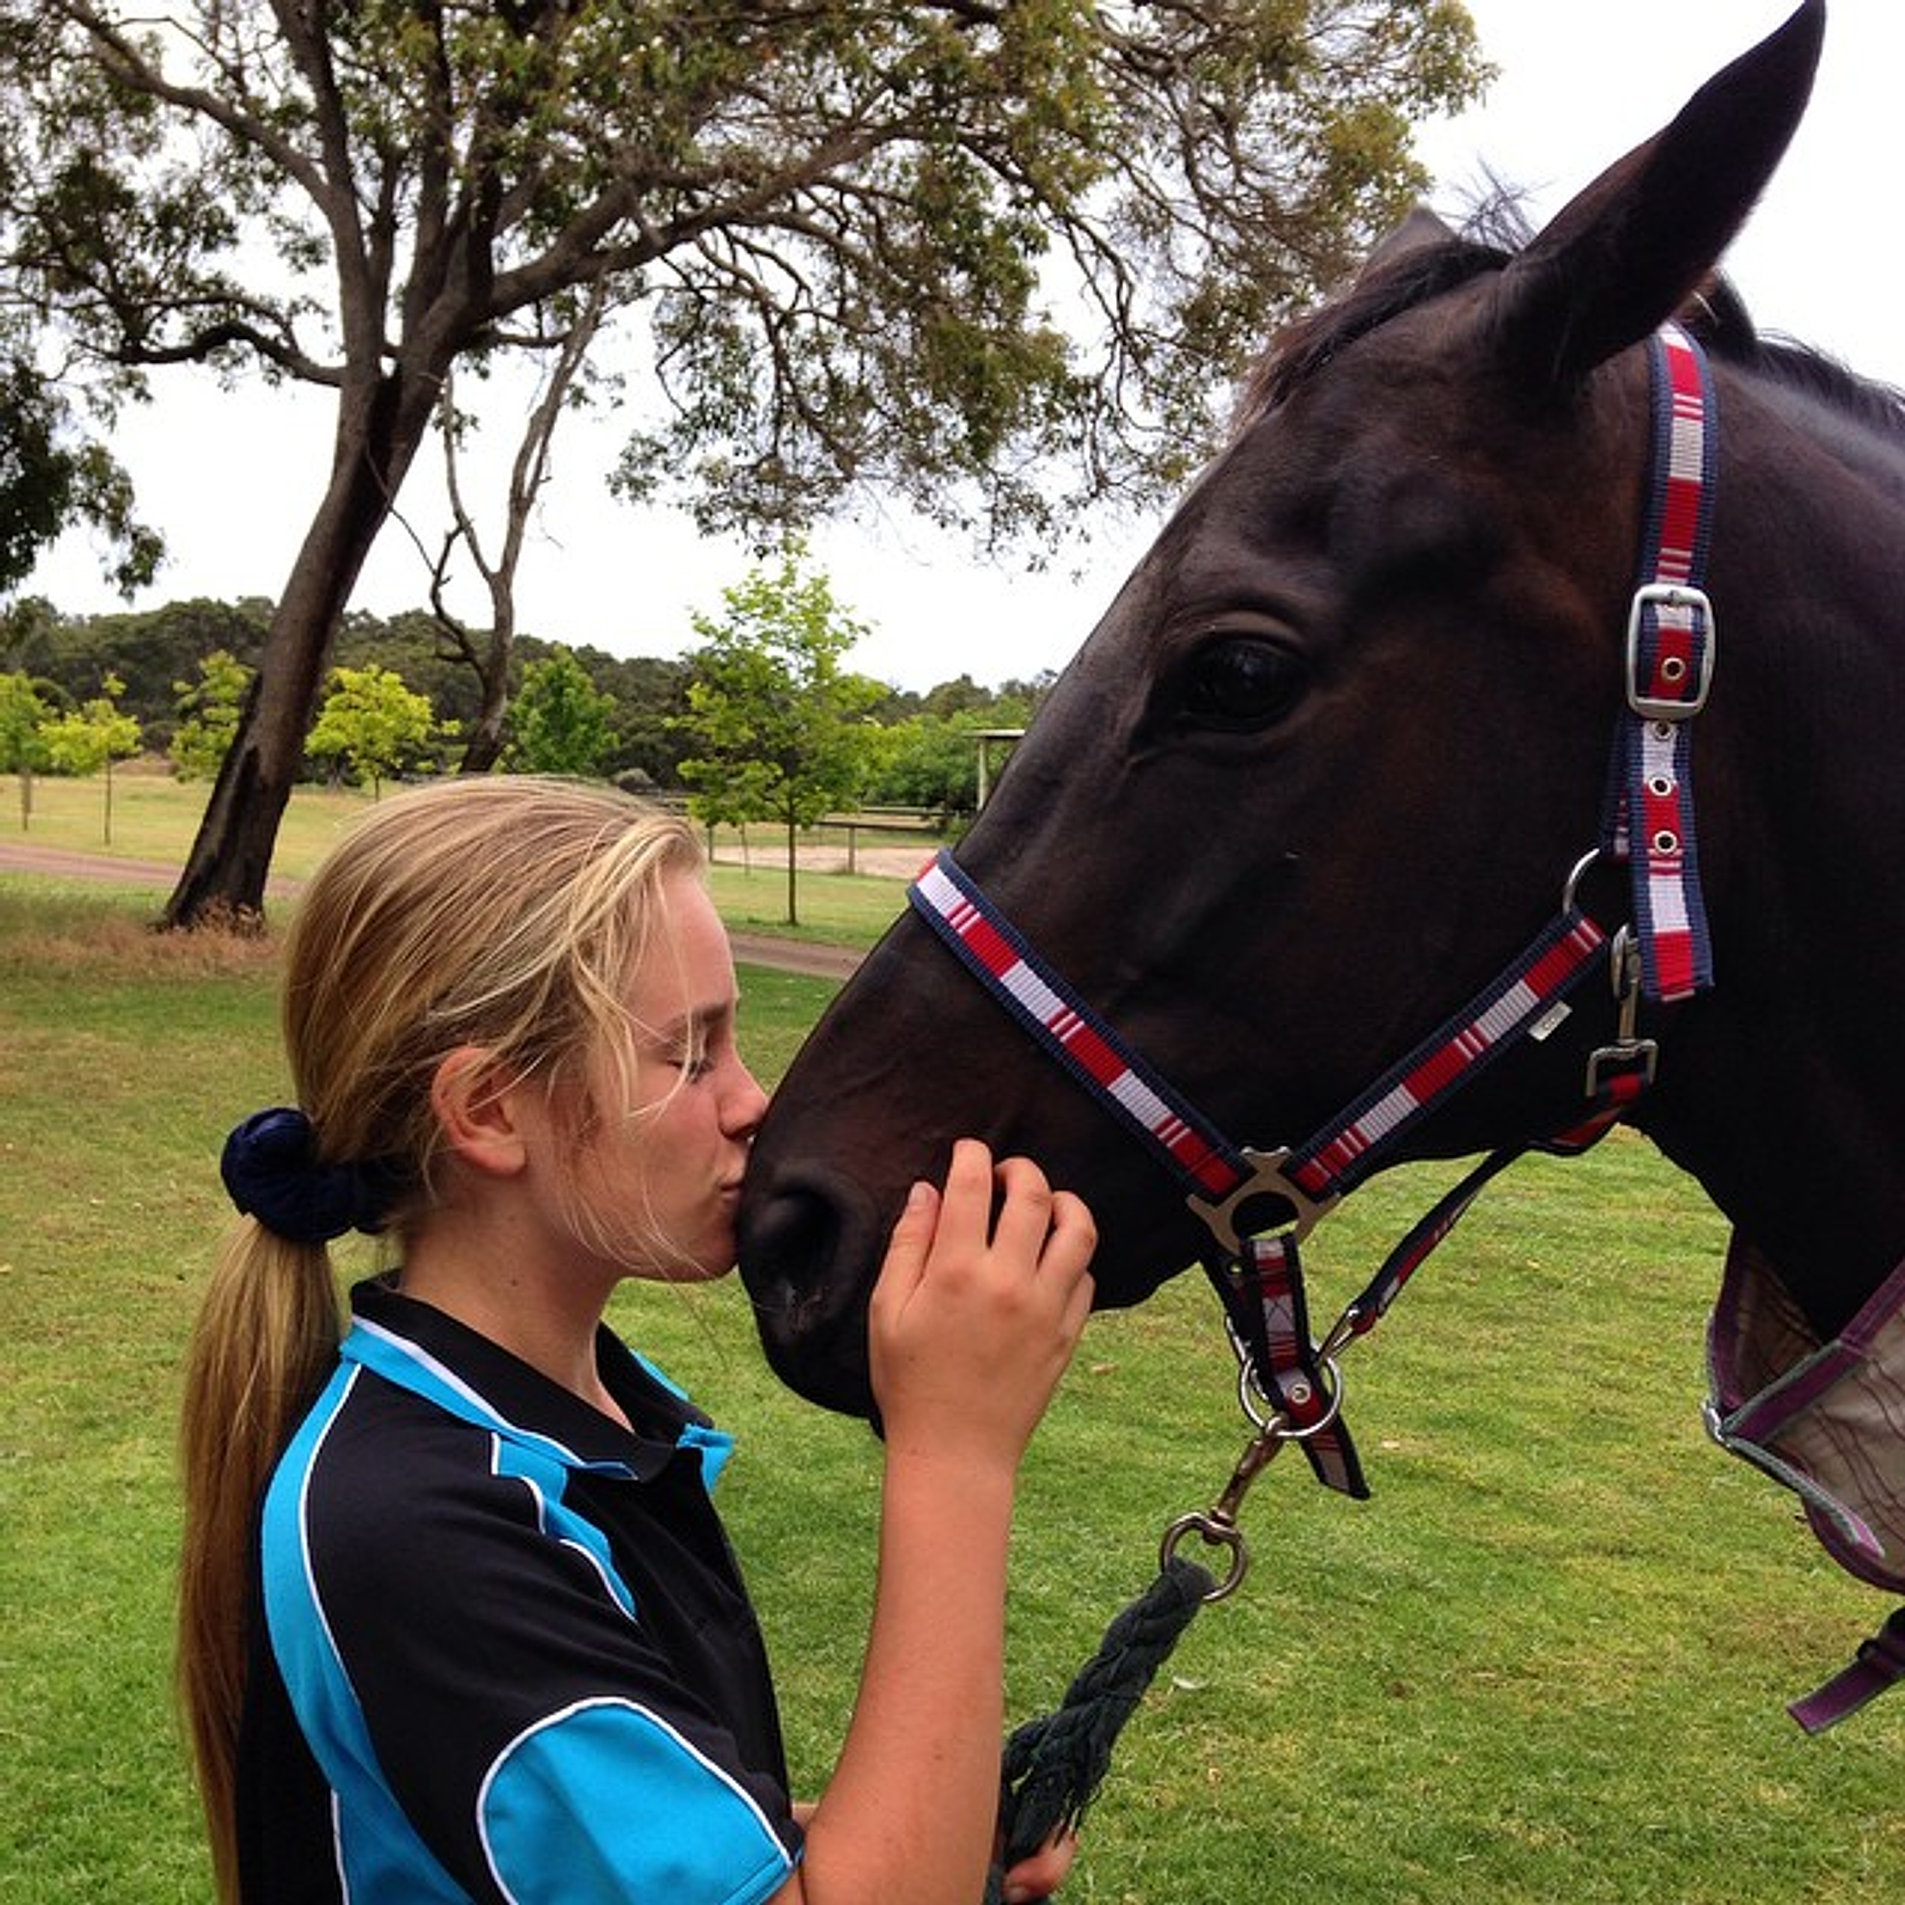 New love #super�� #horse #bonding